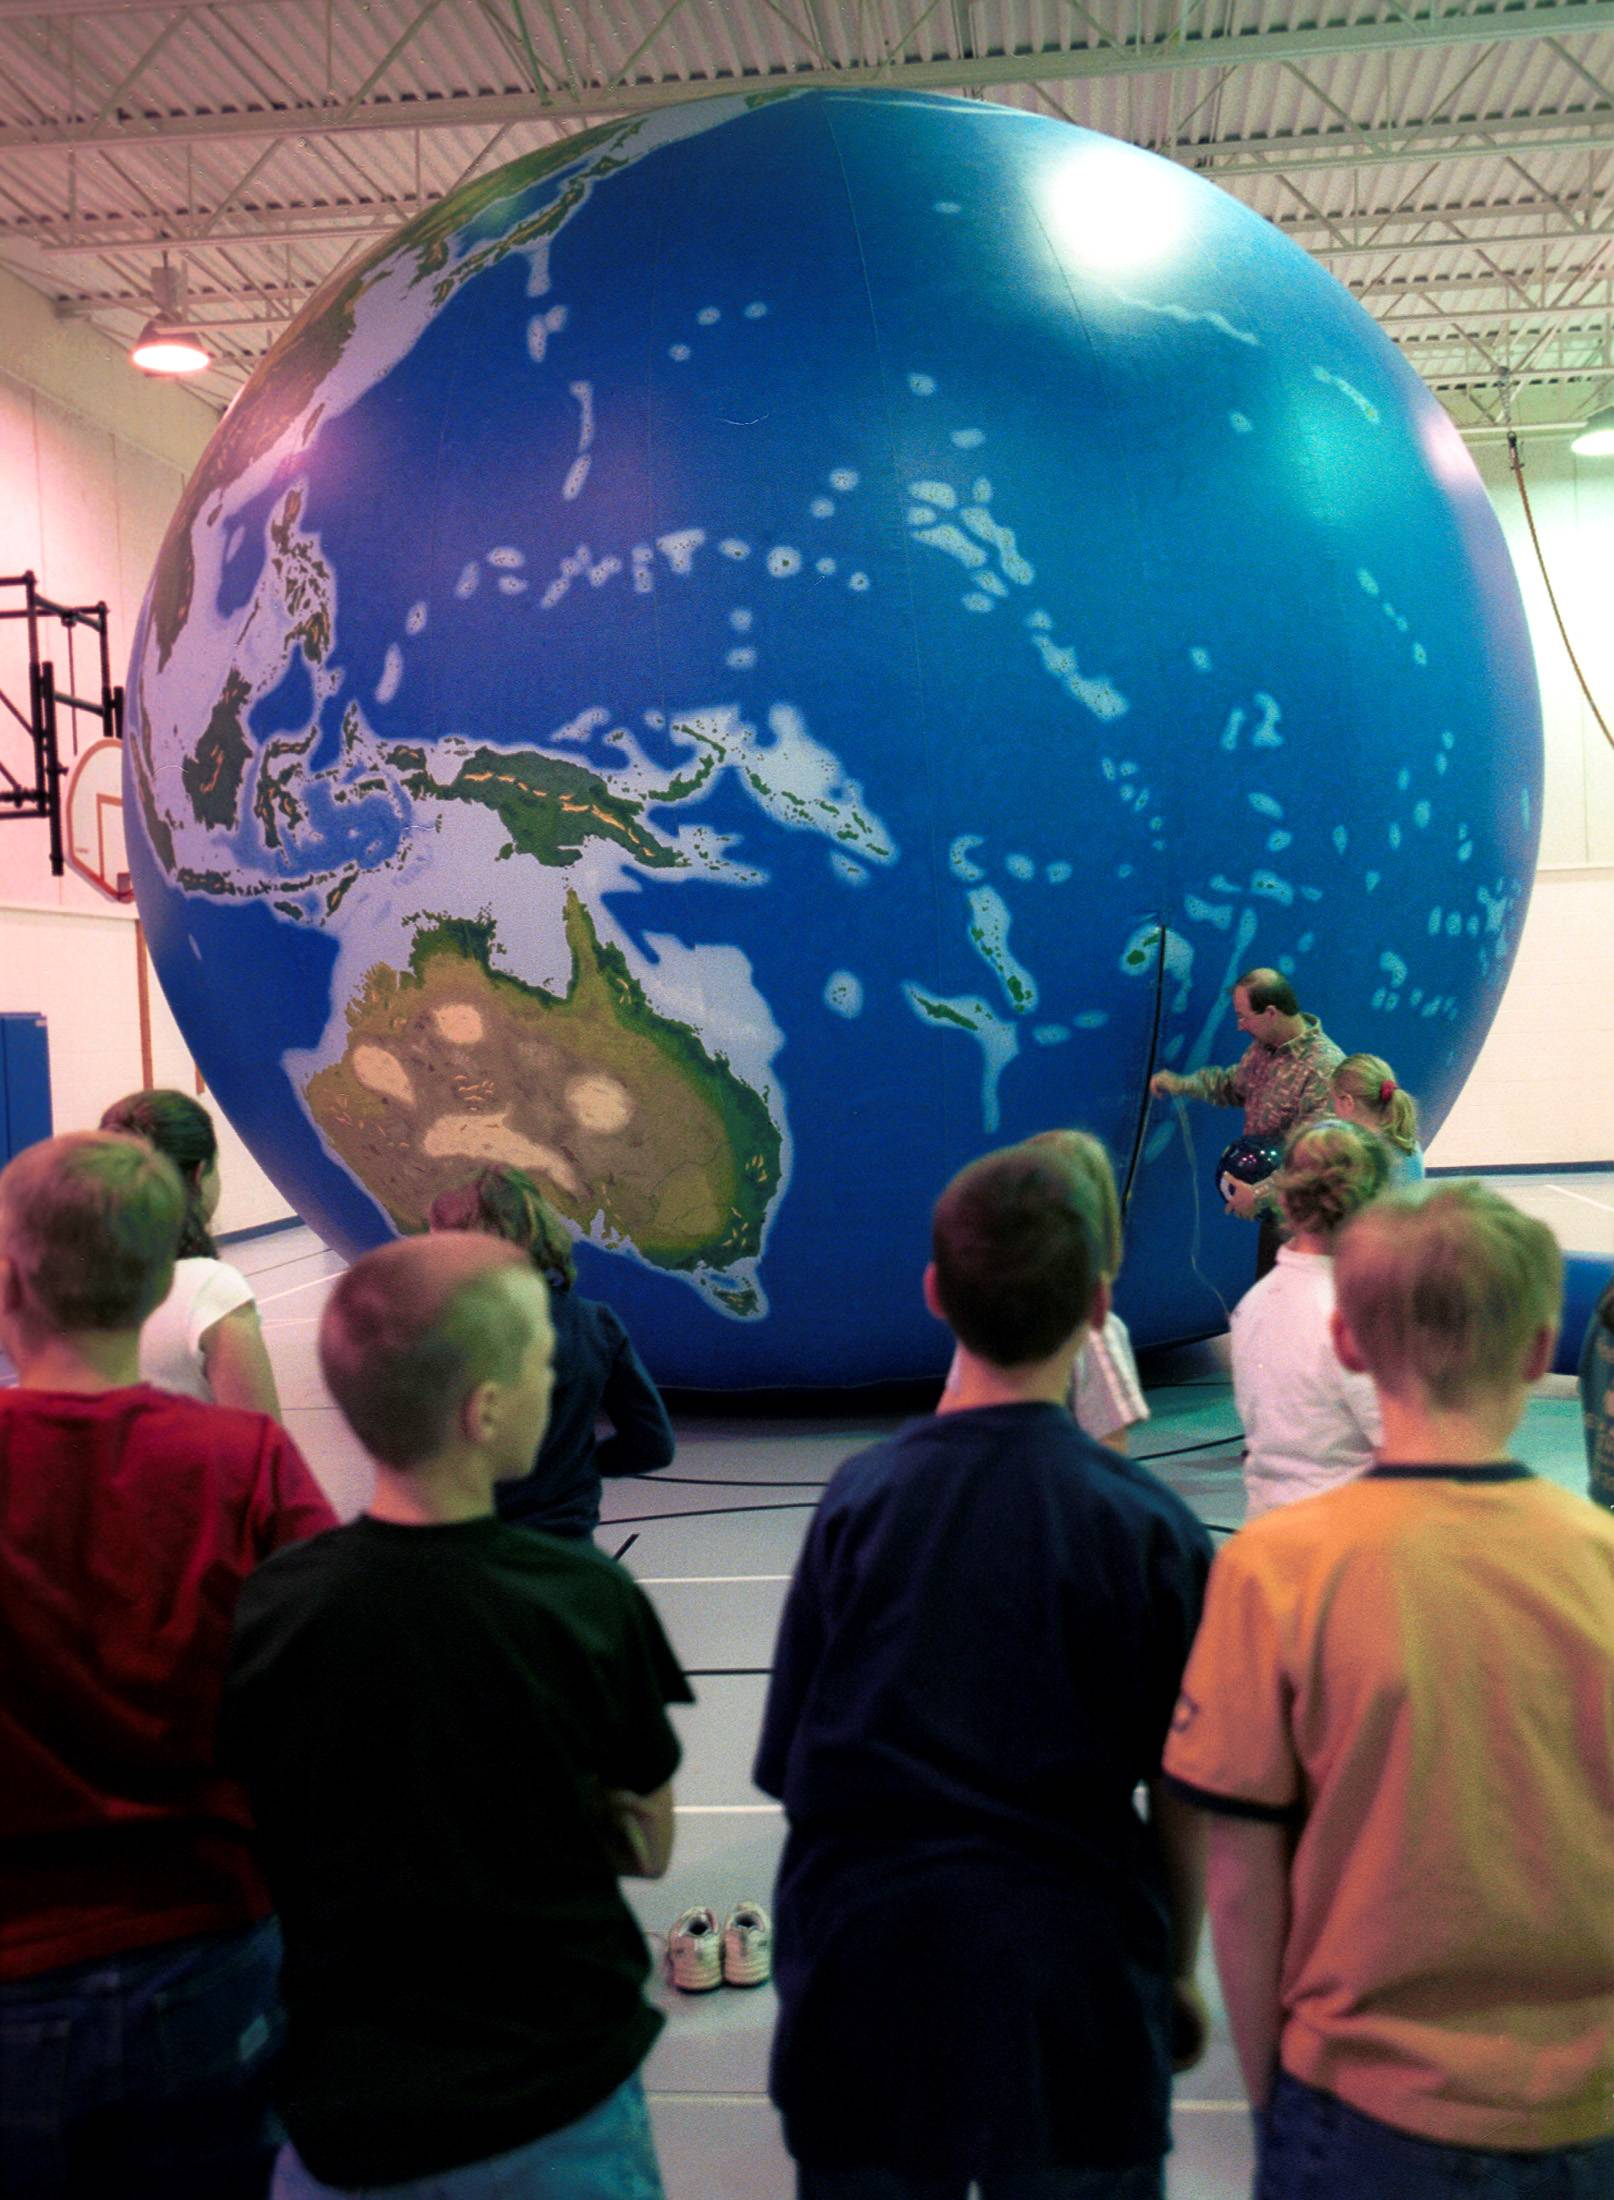 Students learn about the earth with a 20-foot-tall balloon. At this size, it's easy to see the spherical shape of the planet, but the full-size planet can look flat when you're standing on its surface.